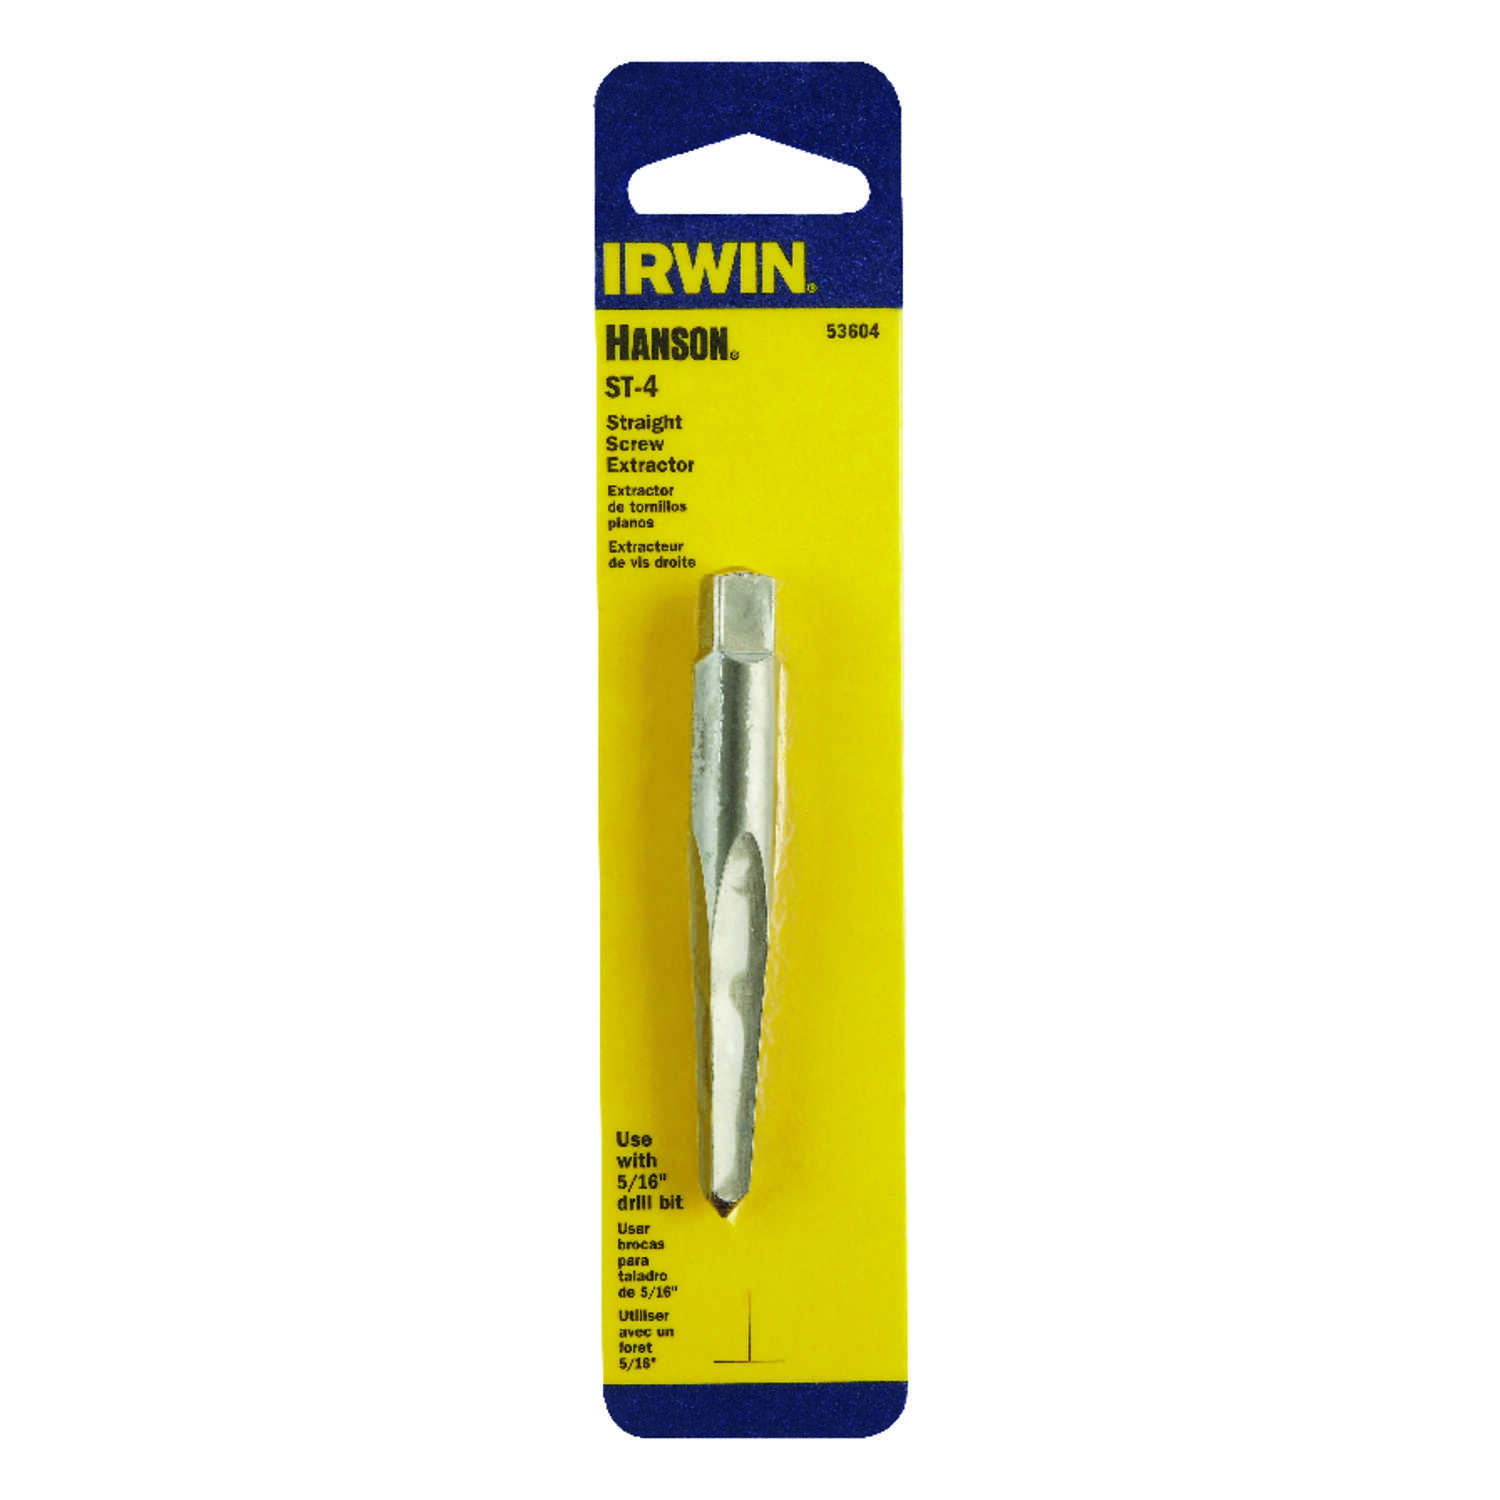 Irwin  Hanson  5/16 in.  x 5/16 in. Dia. Carbon Steel  Straight Screw Extractor  6 in. 1 pc.